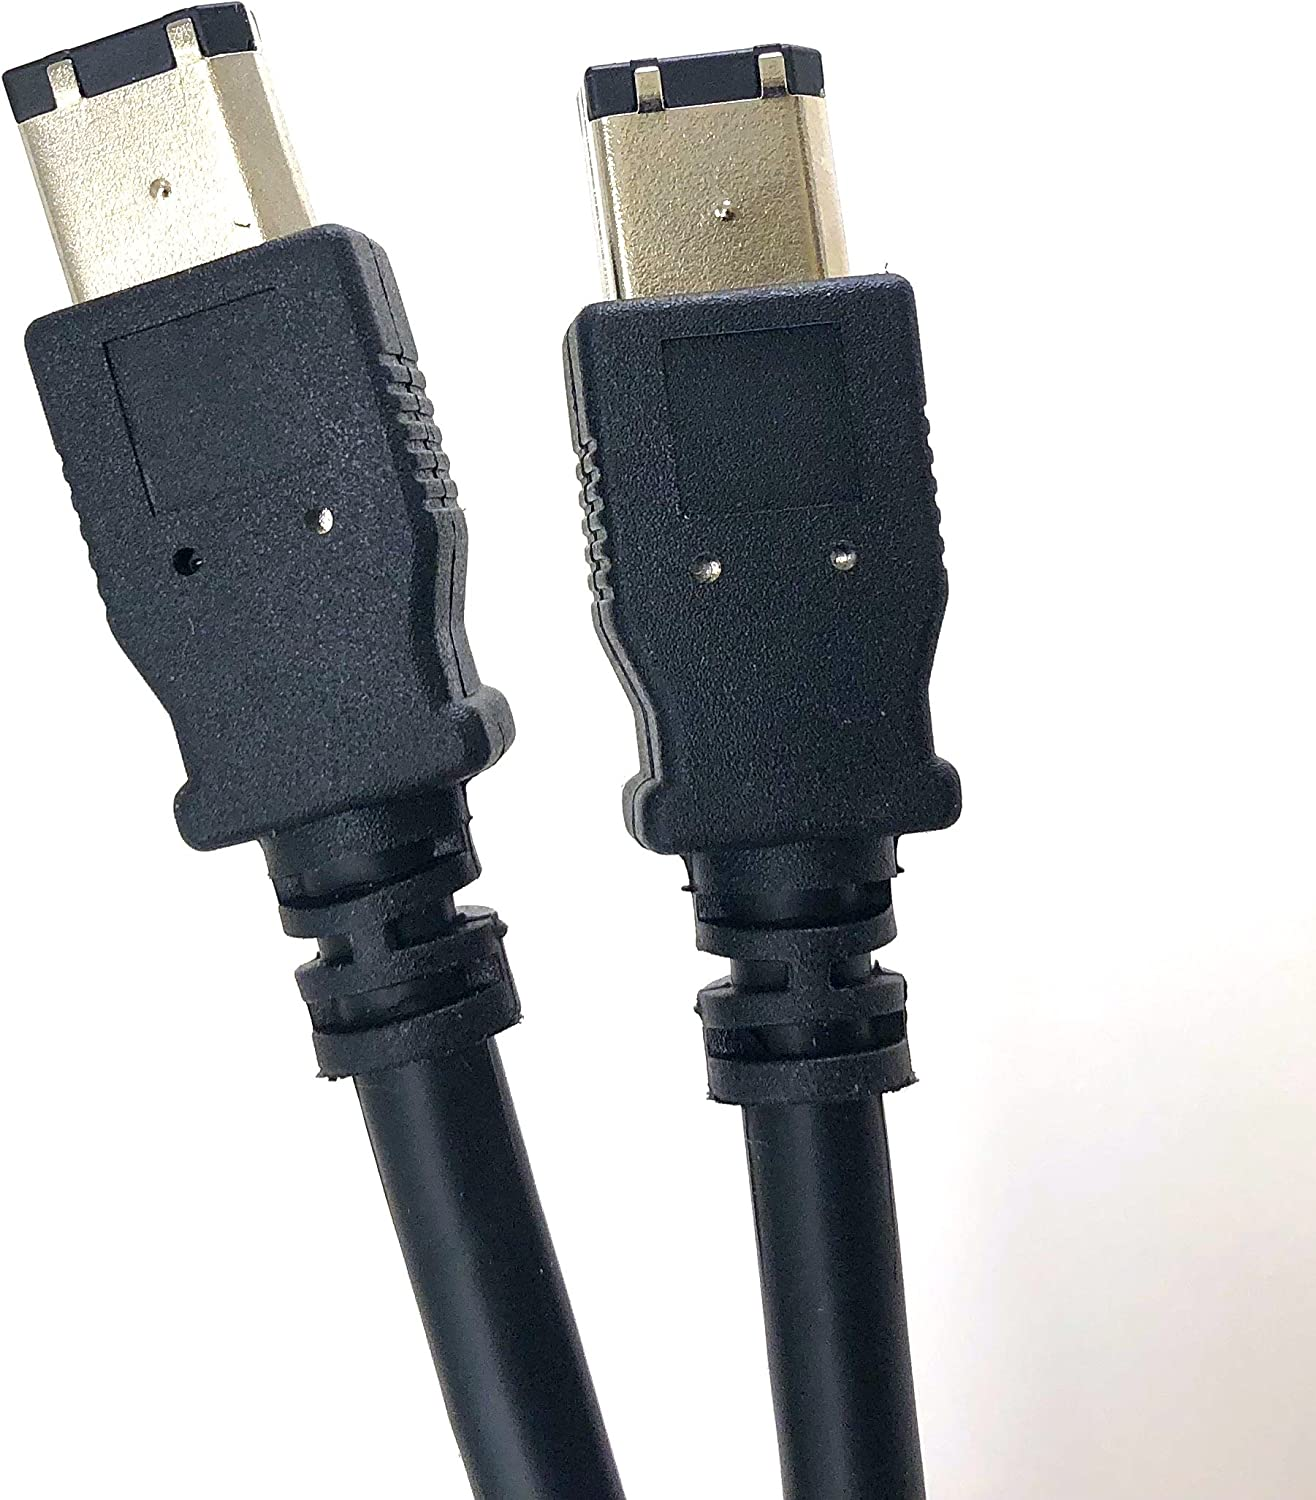 6 Feet Black High Performance IEEE 1394 Firewire Cable A type Male to B Male